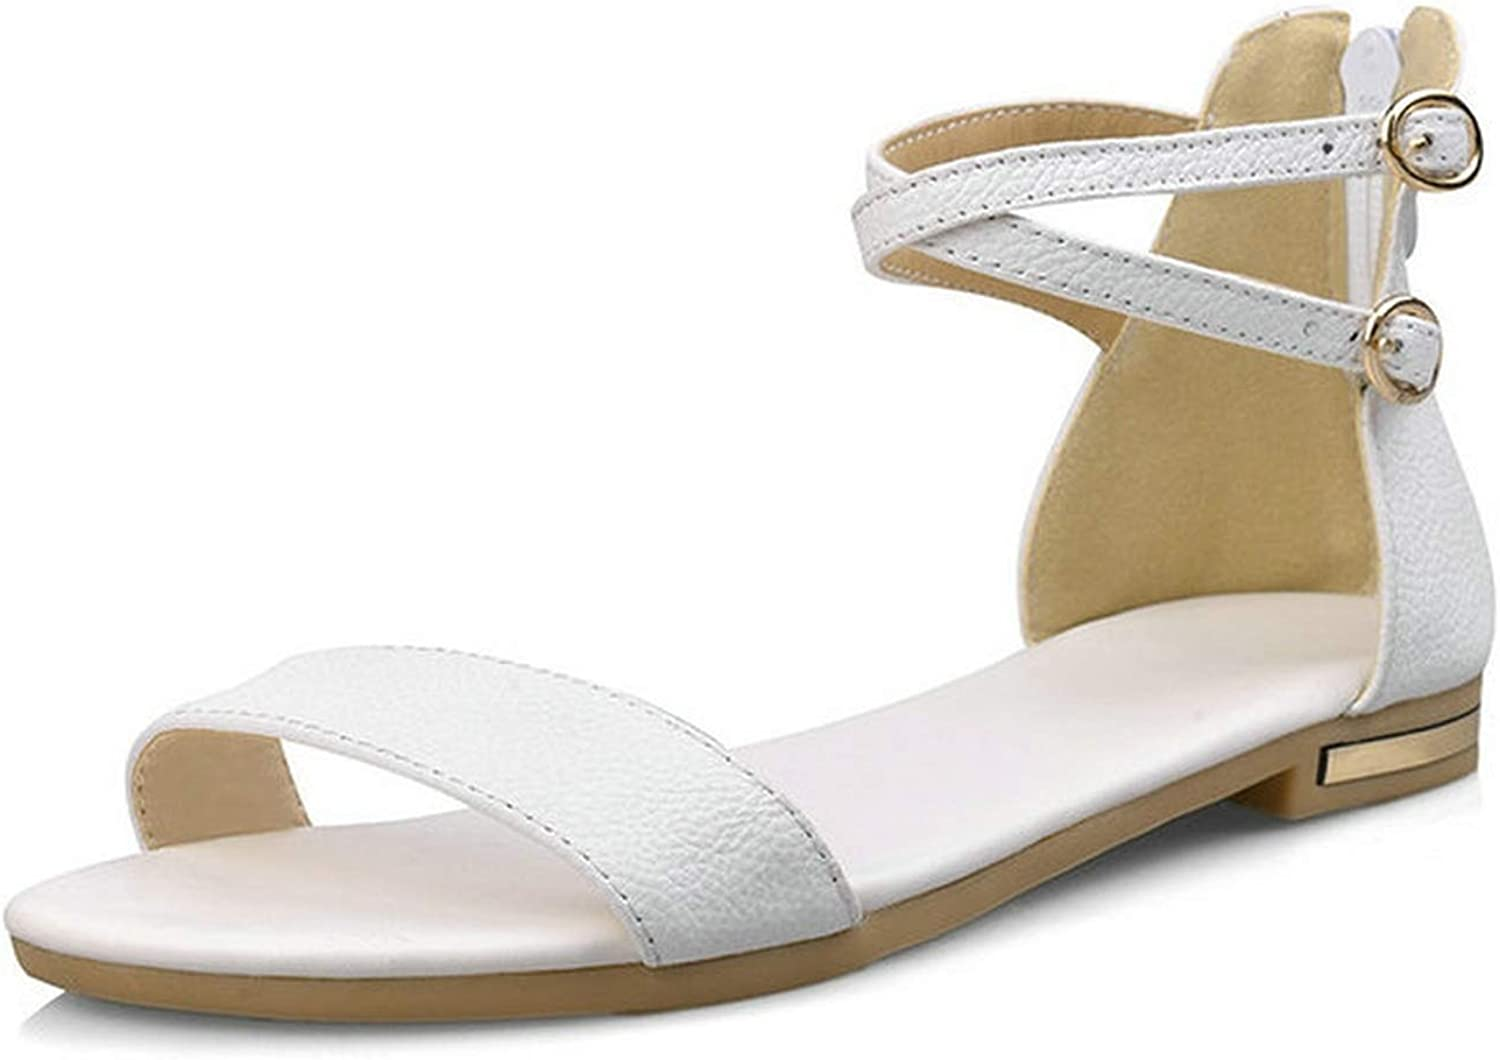 Women Sandals Western Style Pu Leather Cover Heel Women shoes,